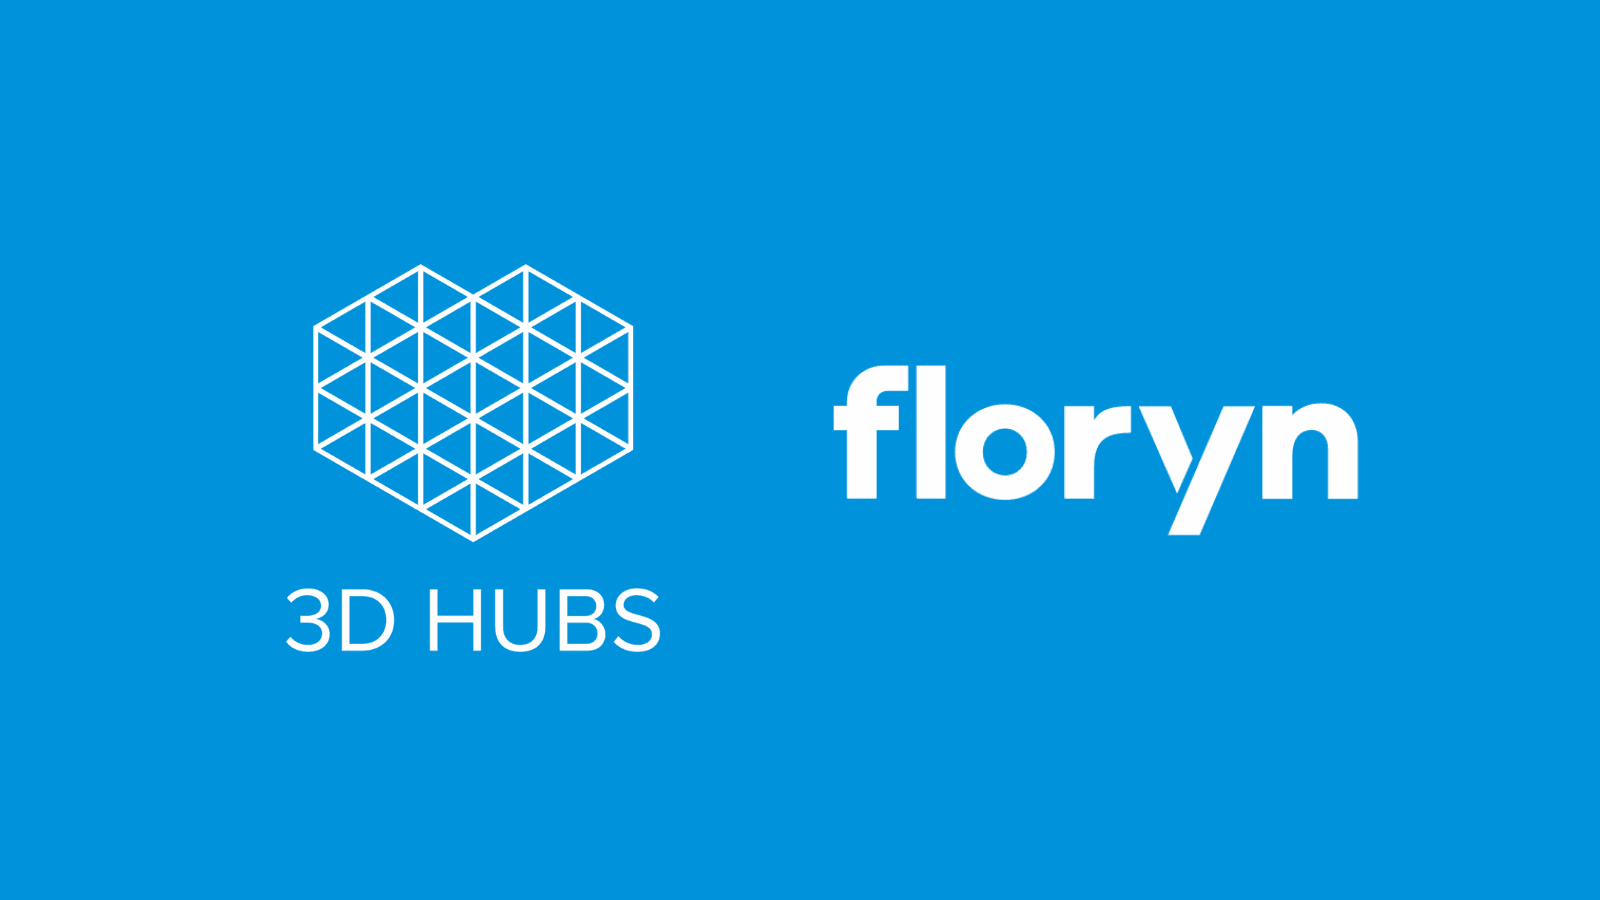 3D Hubs & Floryn nominated for Deloitte Fast 50 Award